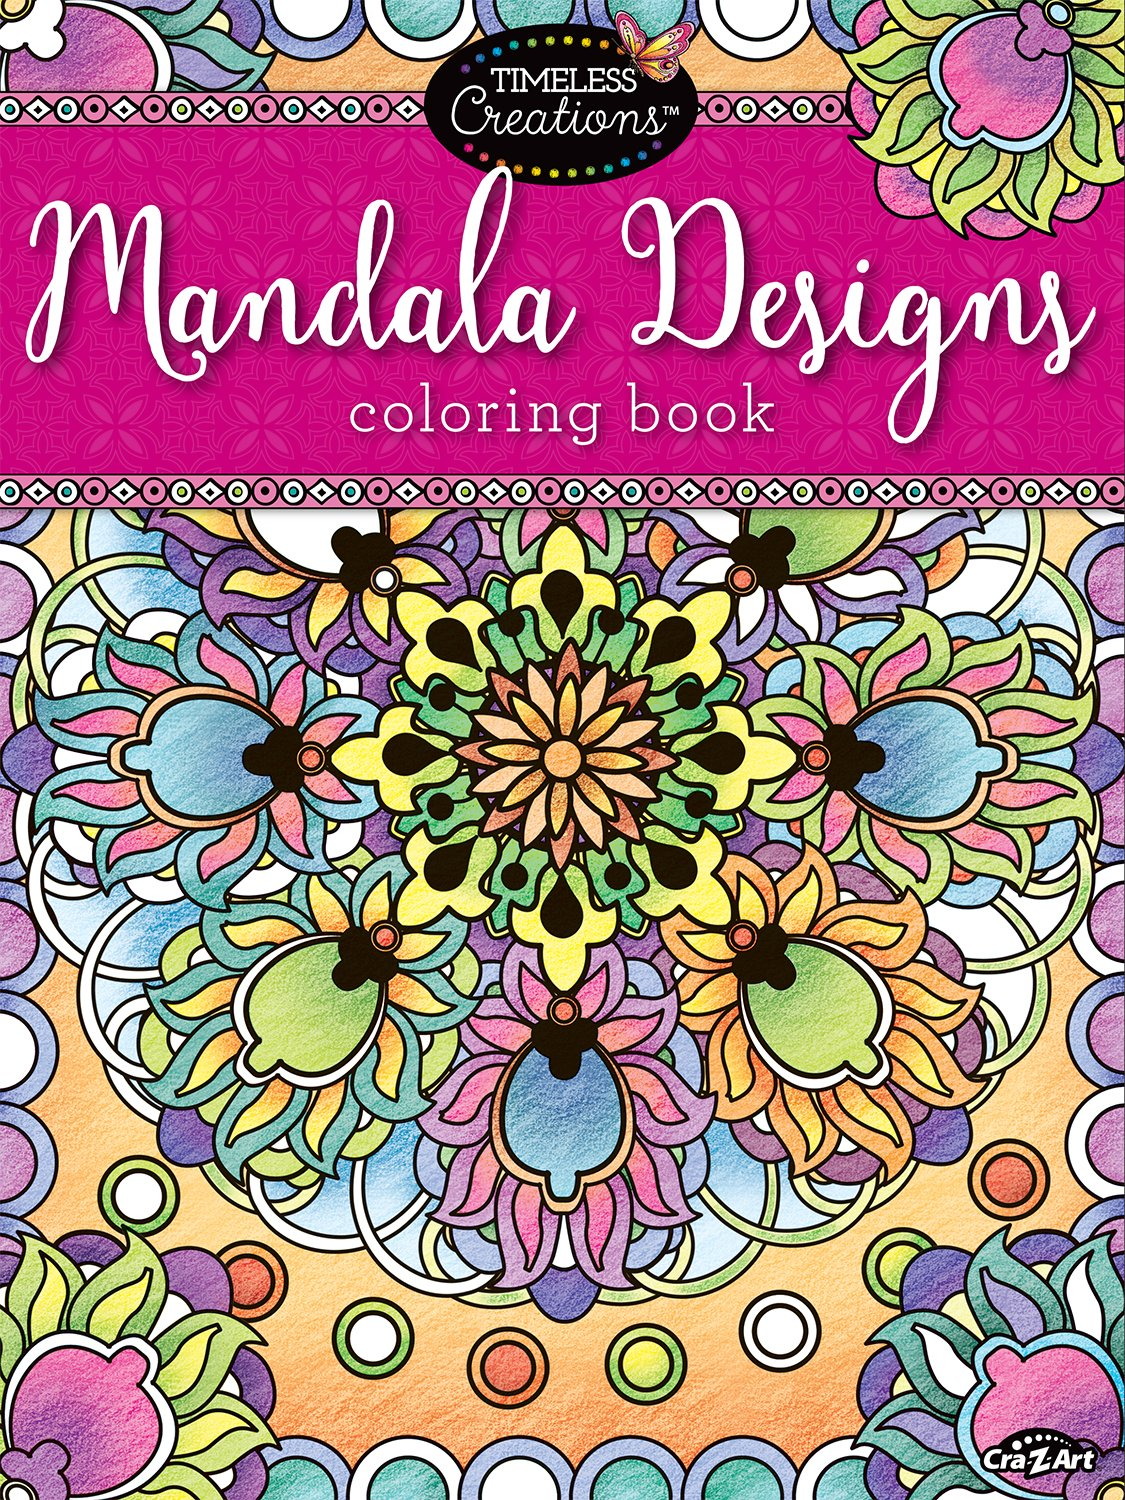 Amazing Best Coloring Books For Adults Thin Blue Is The Warmest Color Book Rectangular Giant Coloring Books Coloring Book App Young Gangsta Rap Coloring Book YellowBible Coloring Book Amazon.com : Cra Z Art Timeless Creations Adult Coloring Books ..